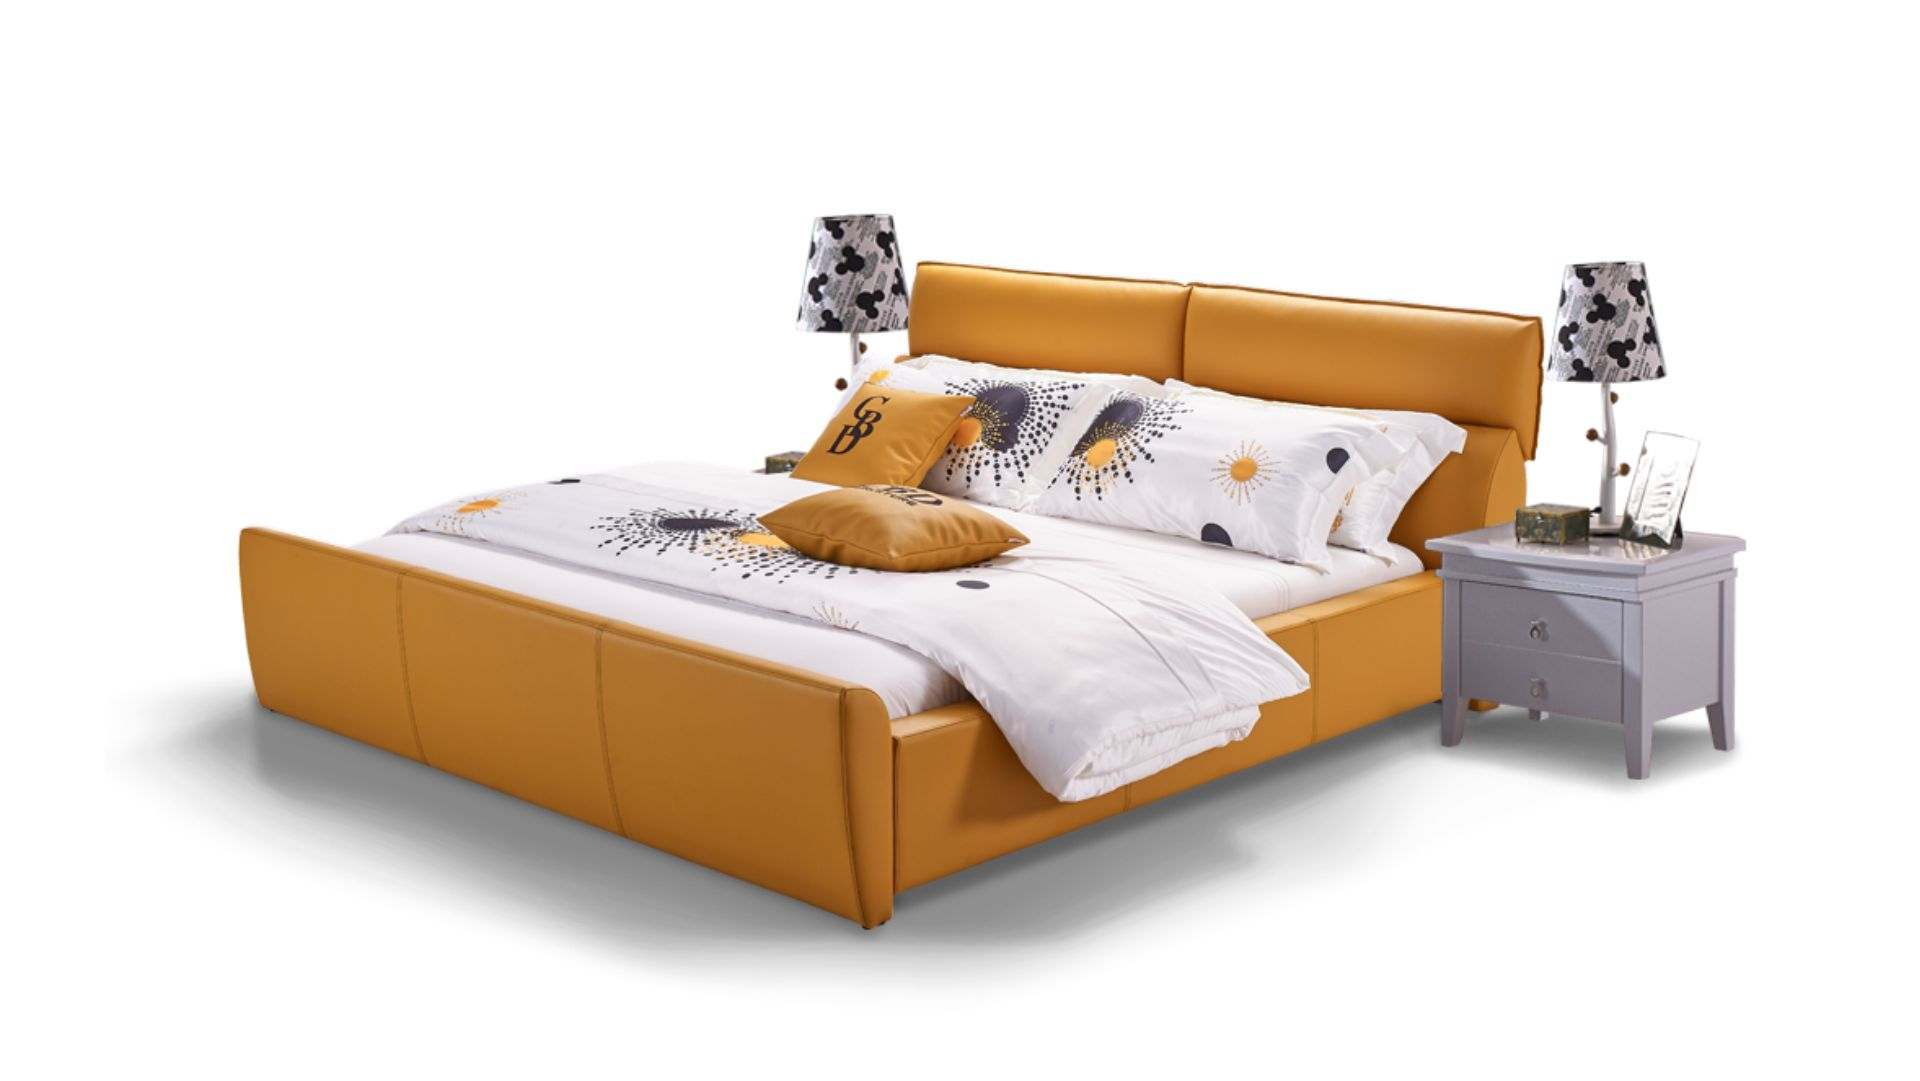 <p><strong>description:</strong></p><p>*bedframe with the 3D slats or motion</p><p>*the whole bed looks very simple and save space.</p><p>*sunset yellow which is full of passion makes the house more vibrant</p><p>*Well matched the mattress and bedding.</p><p><br/></p>